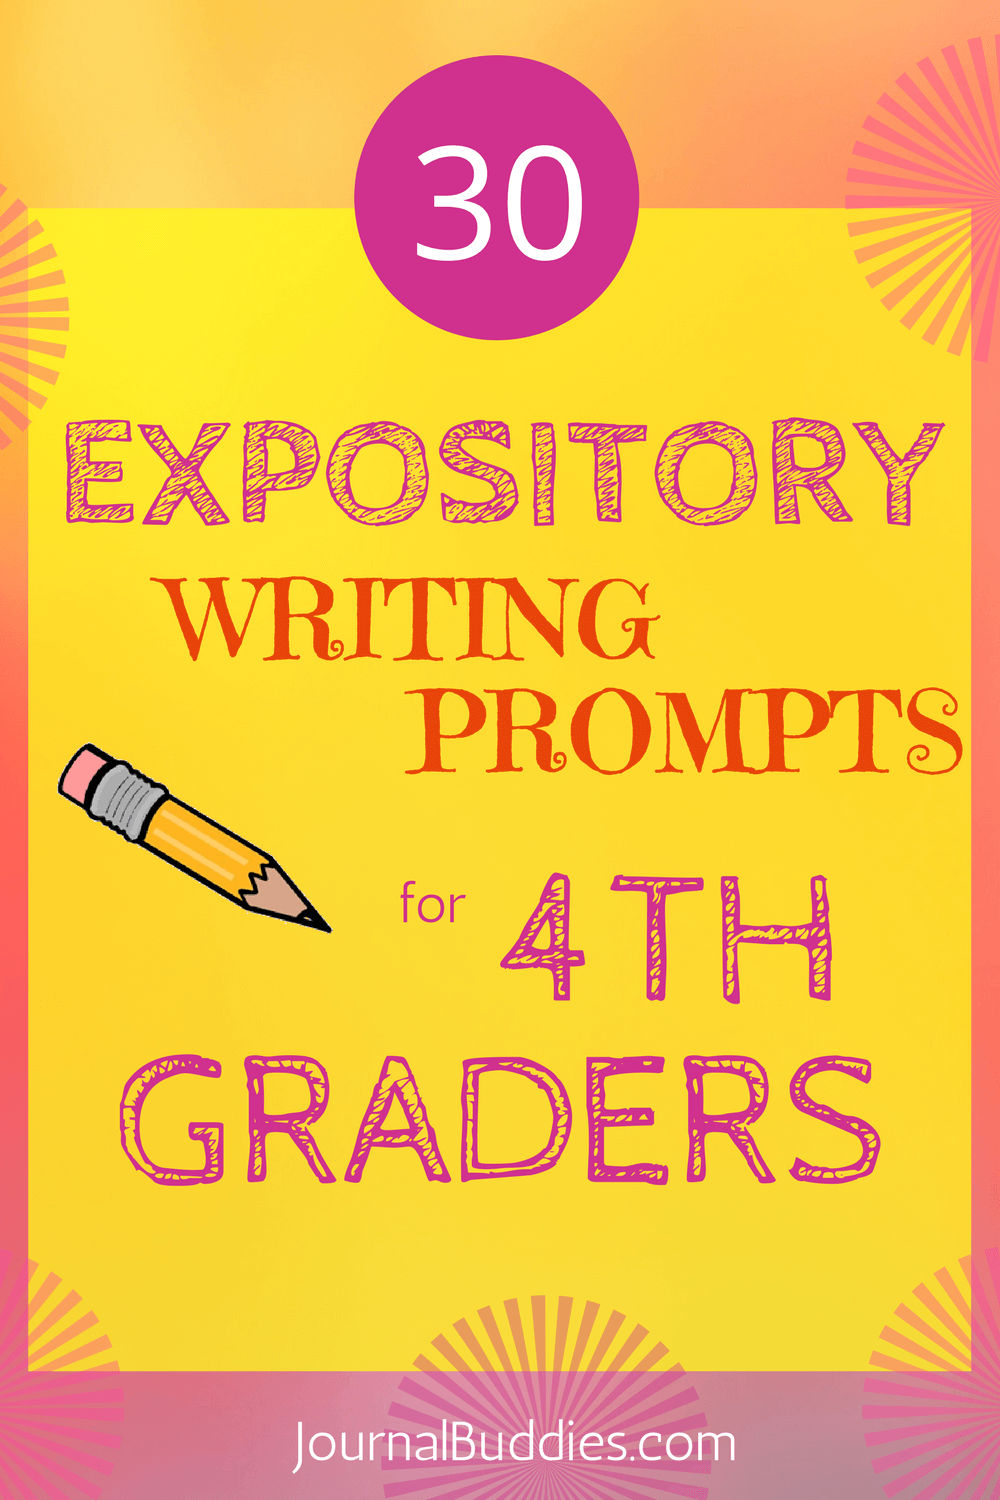 Use these 30 new expository writing prompts to help students better prepare for the academic rigors of the next step ahead of them